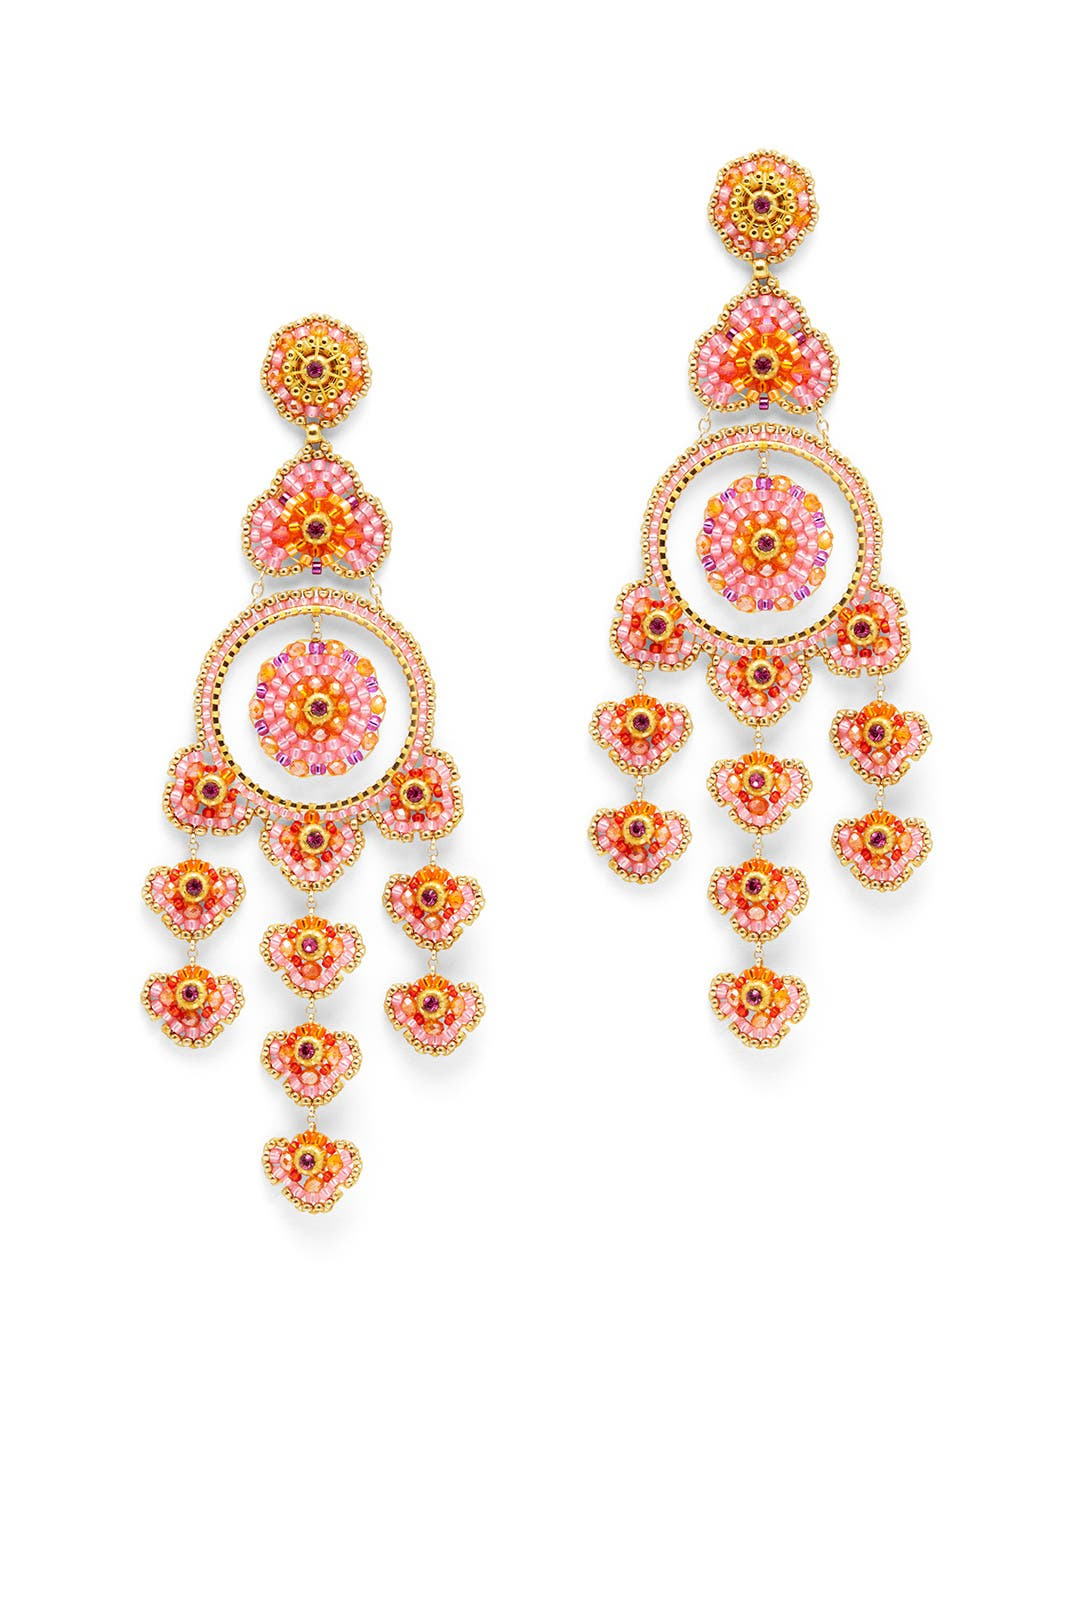 Pink and orange beaded chandelier earrings by miguel ases for 80 pink and orange beaded chandelier earrings by miguel ases for 80 rent the runway arubaitofo Choice Image